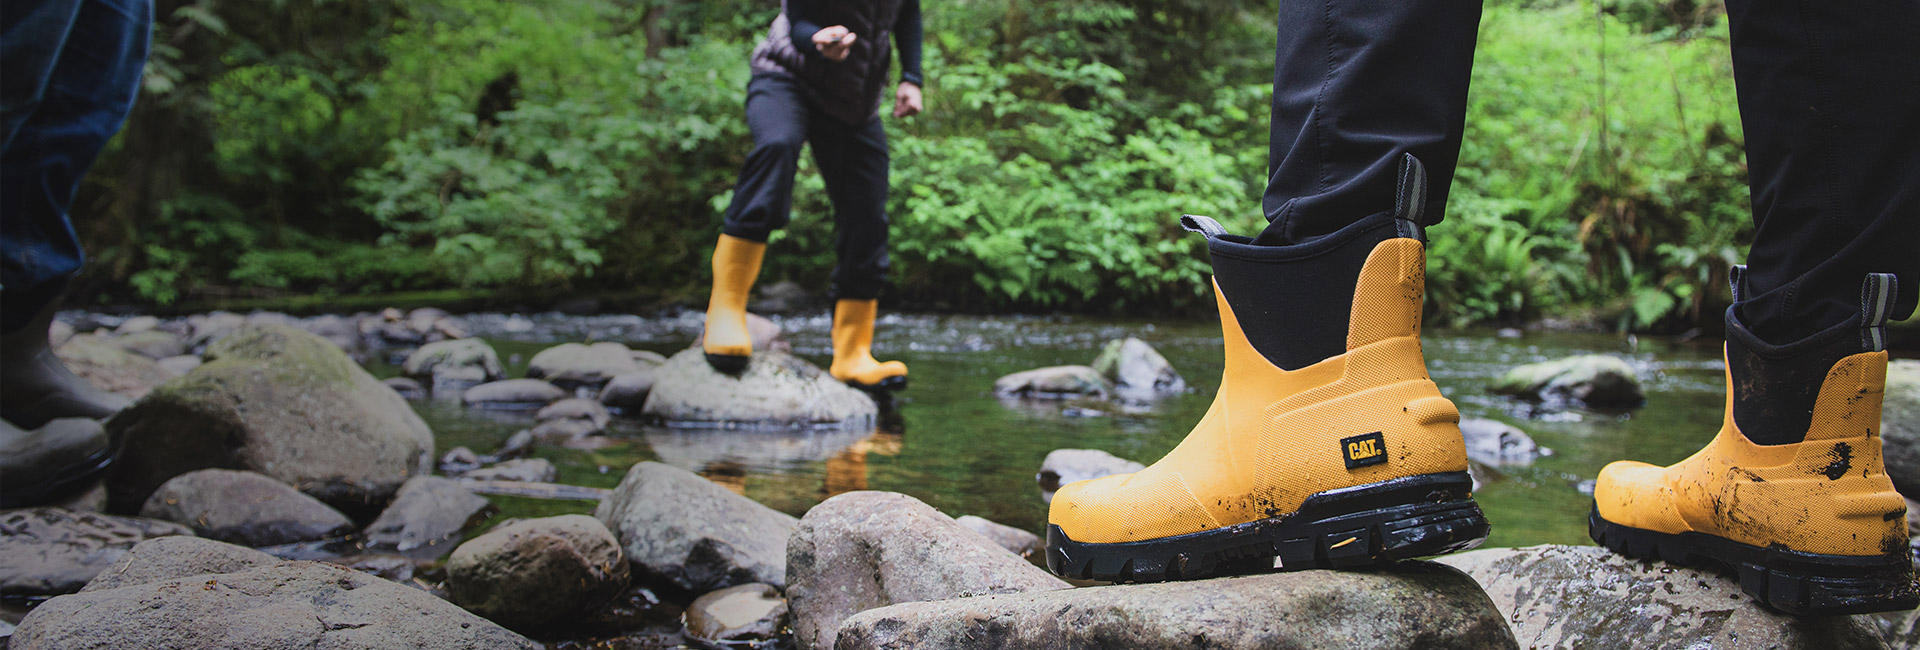 People standing on rocks in a stream, wearing different types of yellow and black waterproof shoes.